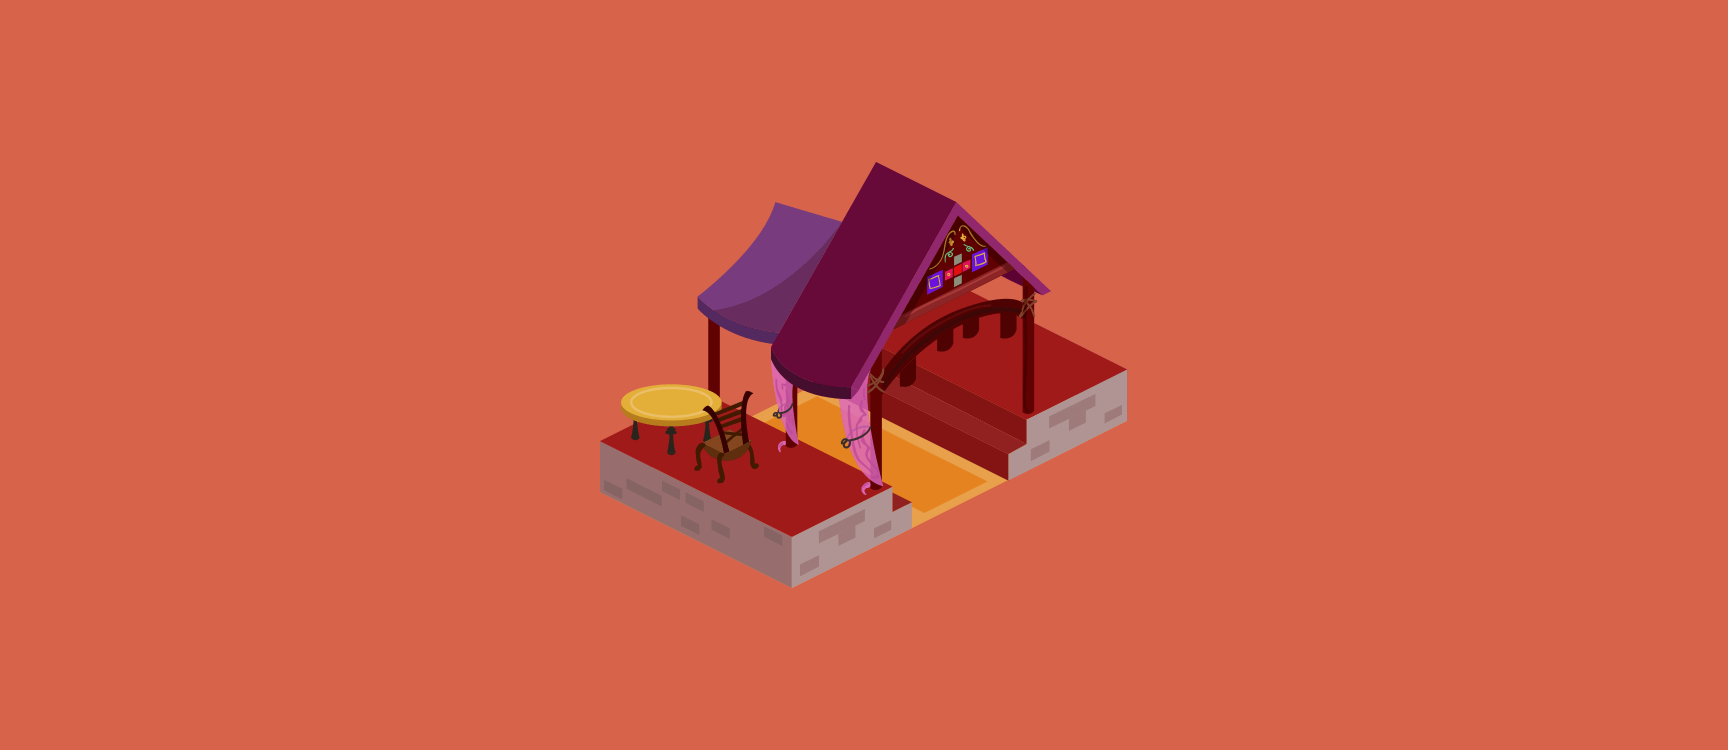 Indian Restaurant Illustration 1